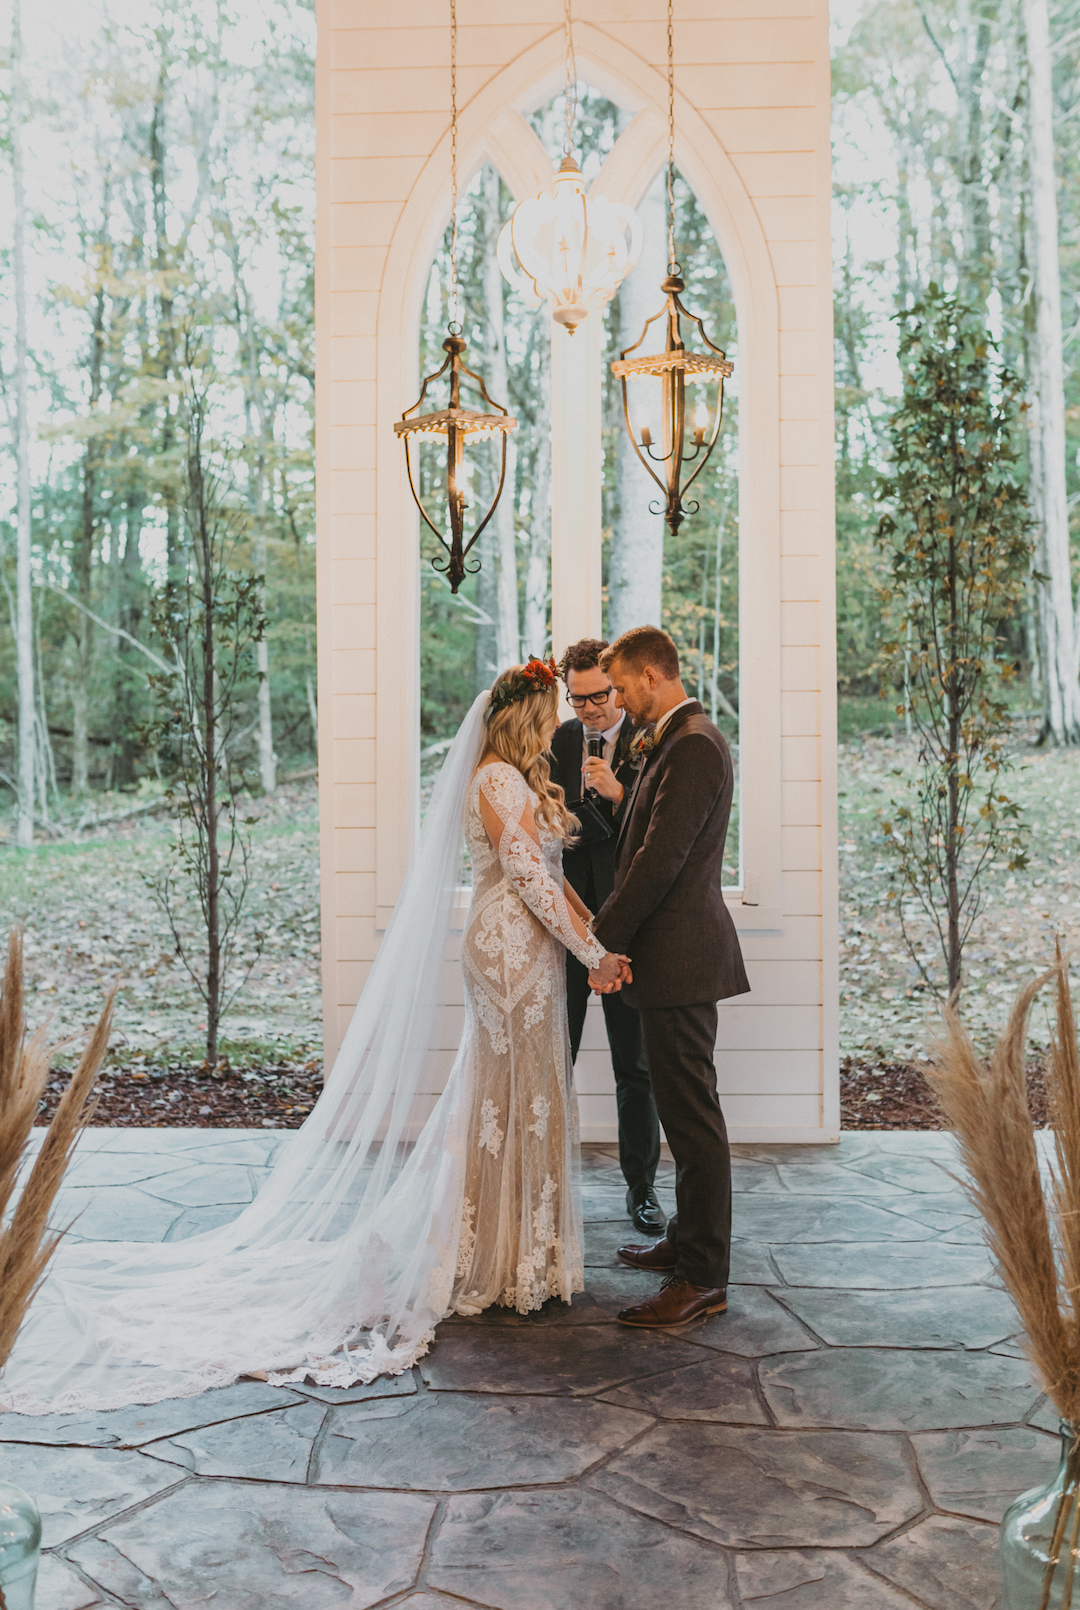 Semi outdoor wedding ceremony at Firefly Lane